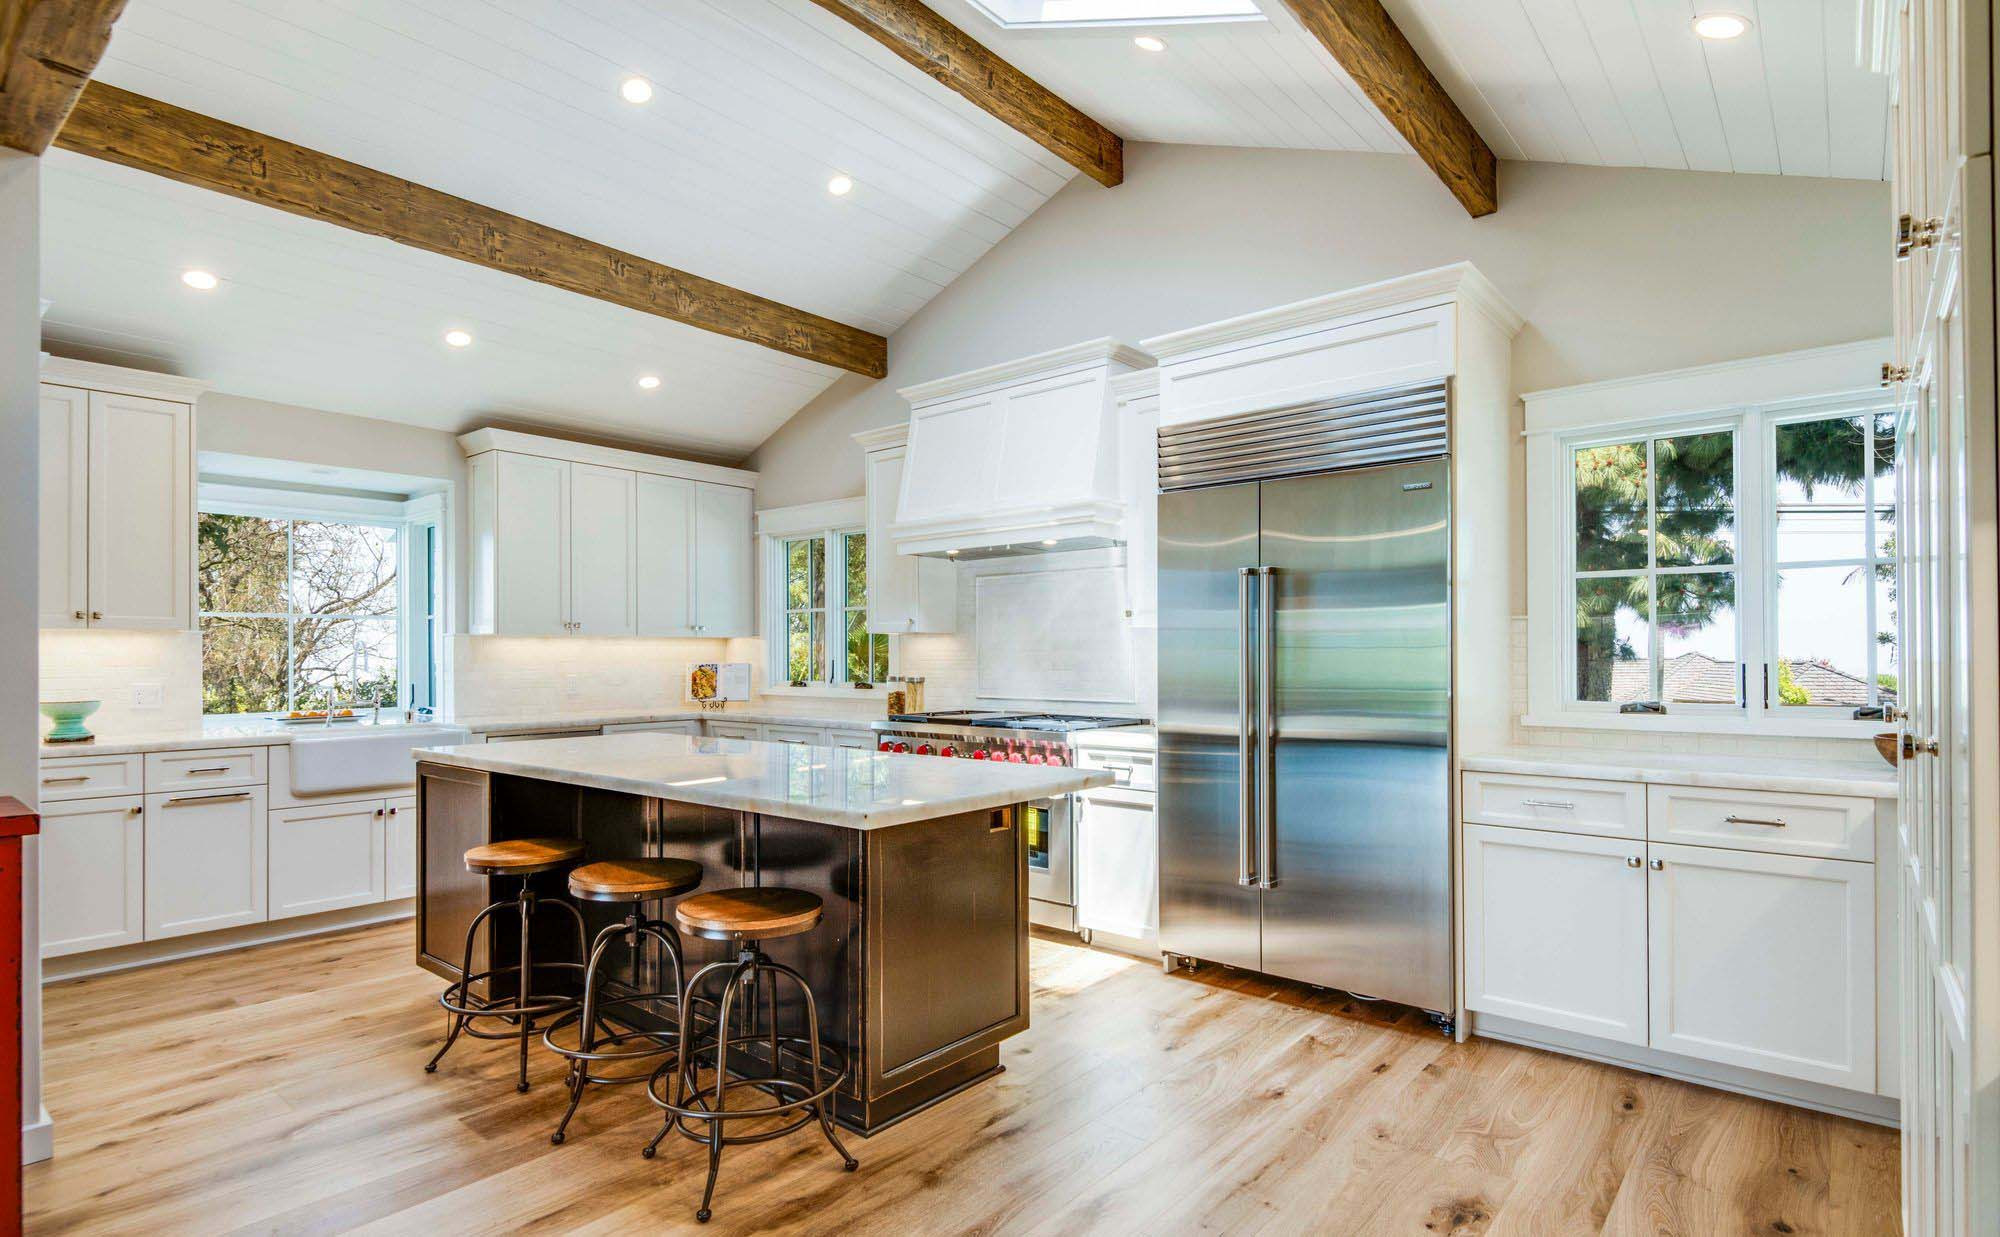 vaulted kitchen ceilings with exposed wood beams